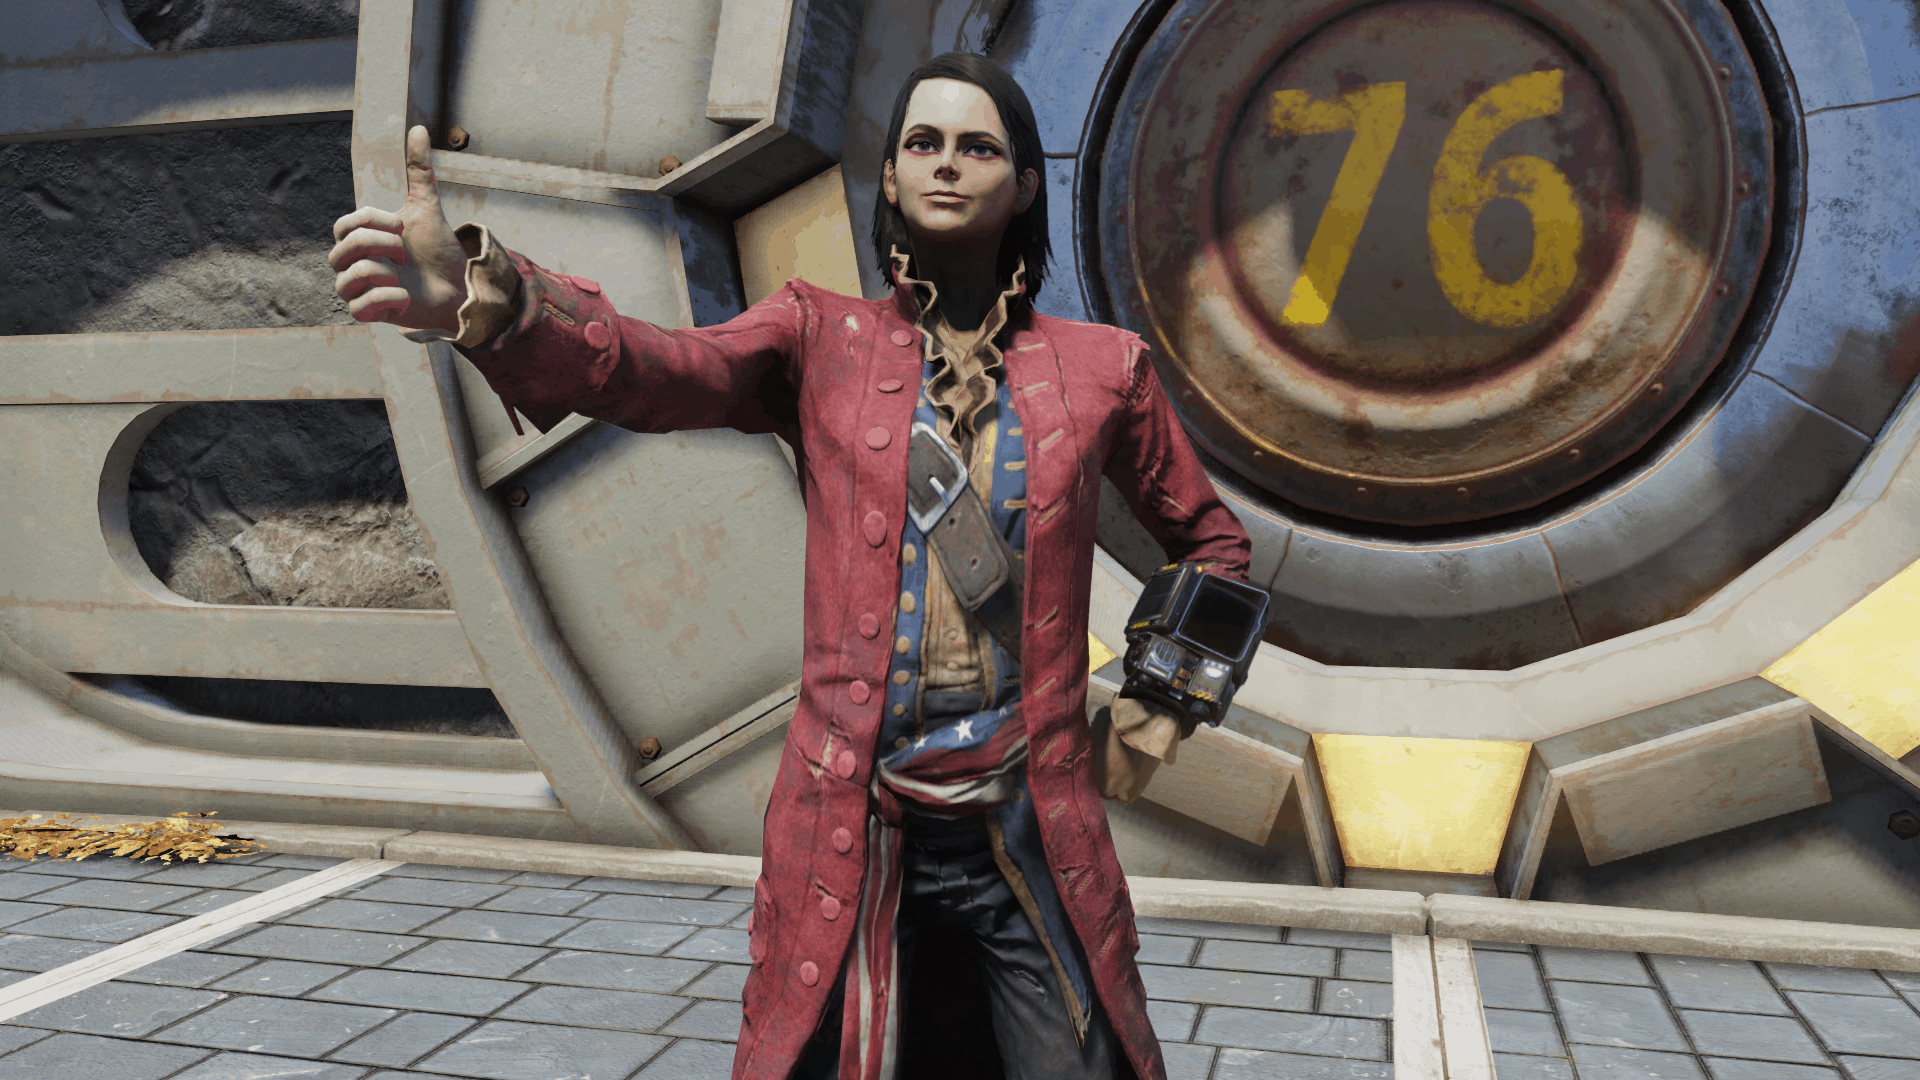 Some Fallout 4 Outfits - Fallout 76 Mod download